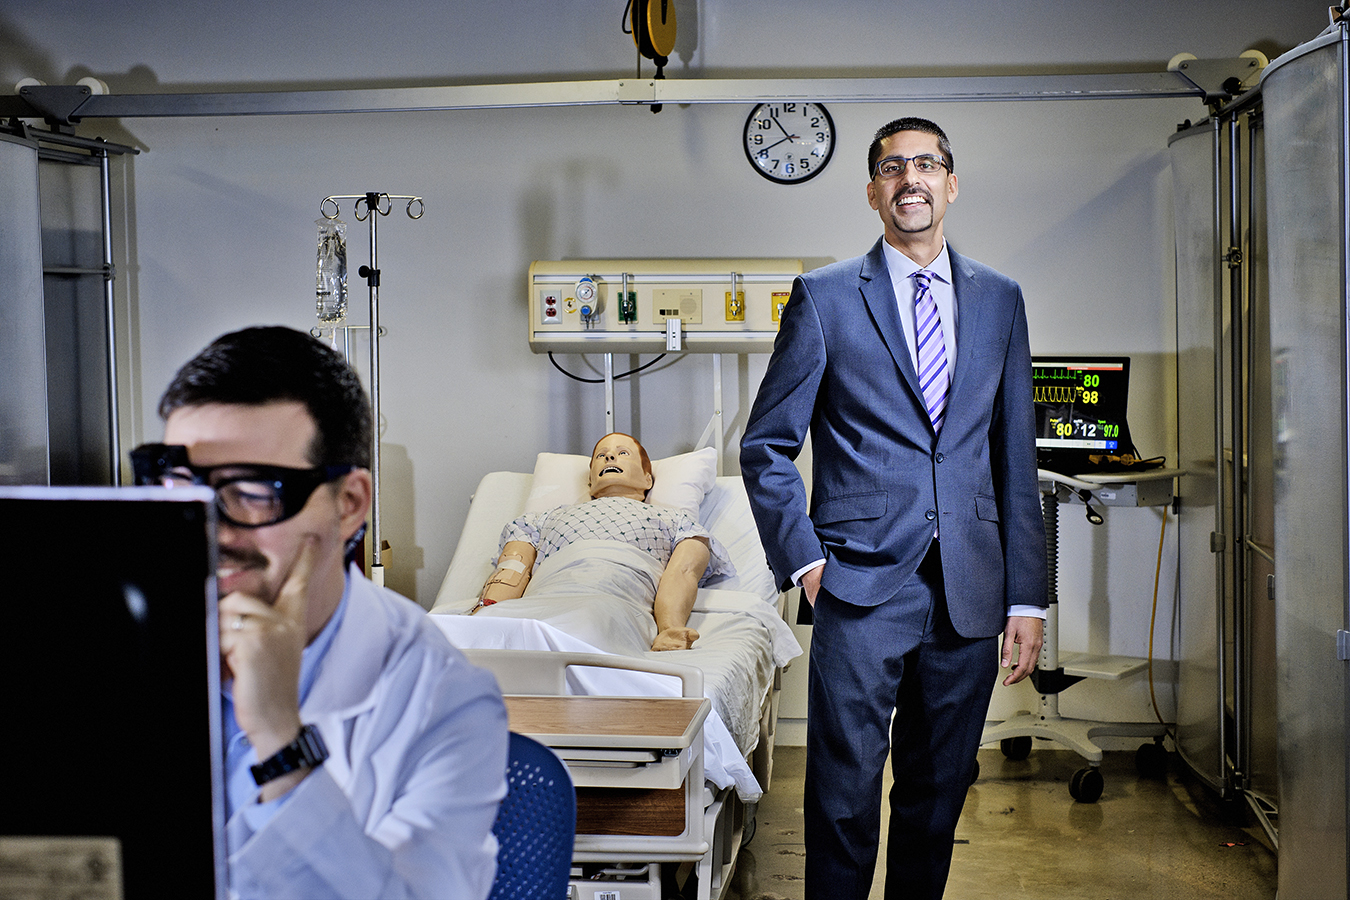 0e8fac49c804 MedStar s Raj Ratwani (standing) studies eye-tracking with Dr. Zach  Hettinger to see how doctors interact with EHRs.(T.J. Kirkpatrick for  Fortune)